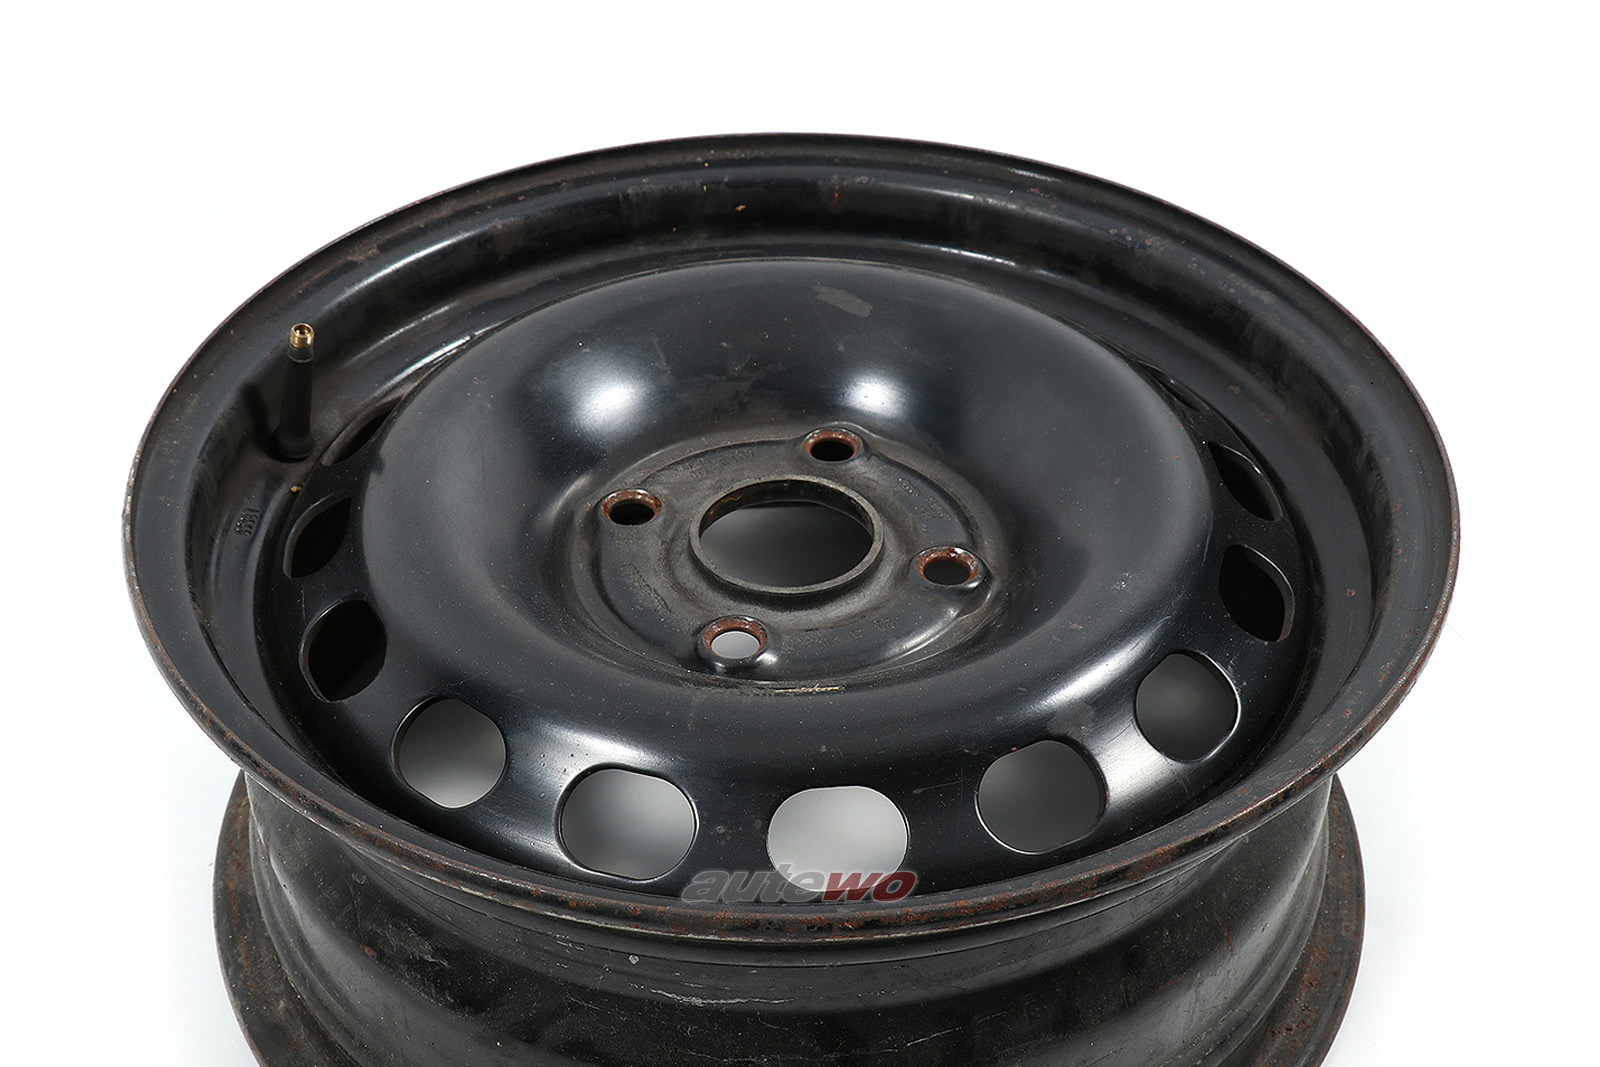 8A0601025G Audi 80 B4/Coupe/Cabrio Typ 89 Stahlfelge 6Jx15 ET37 4x108